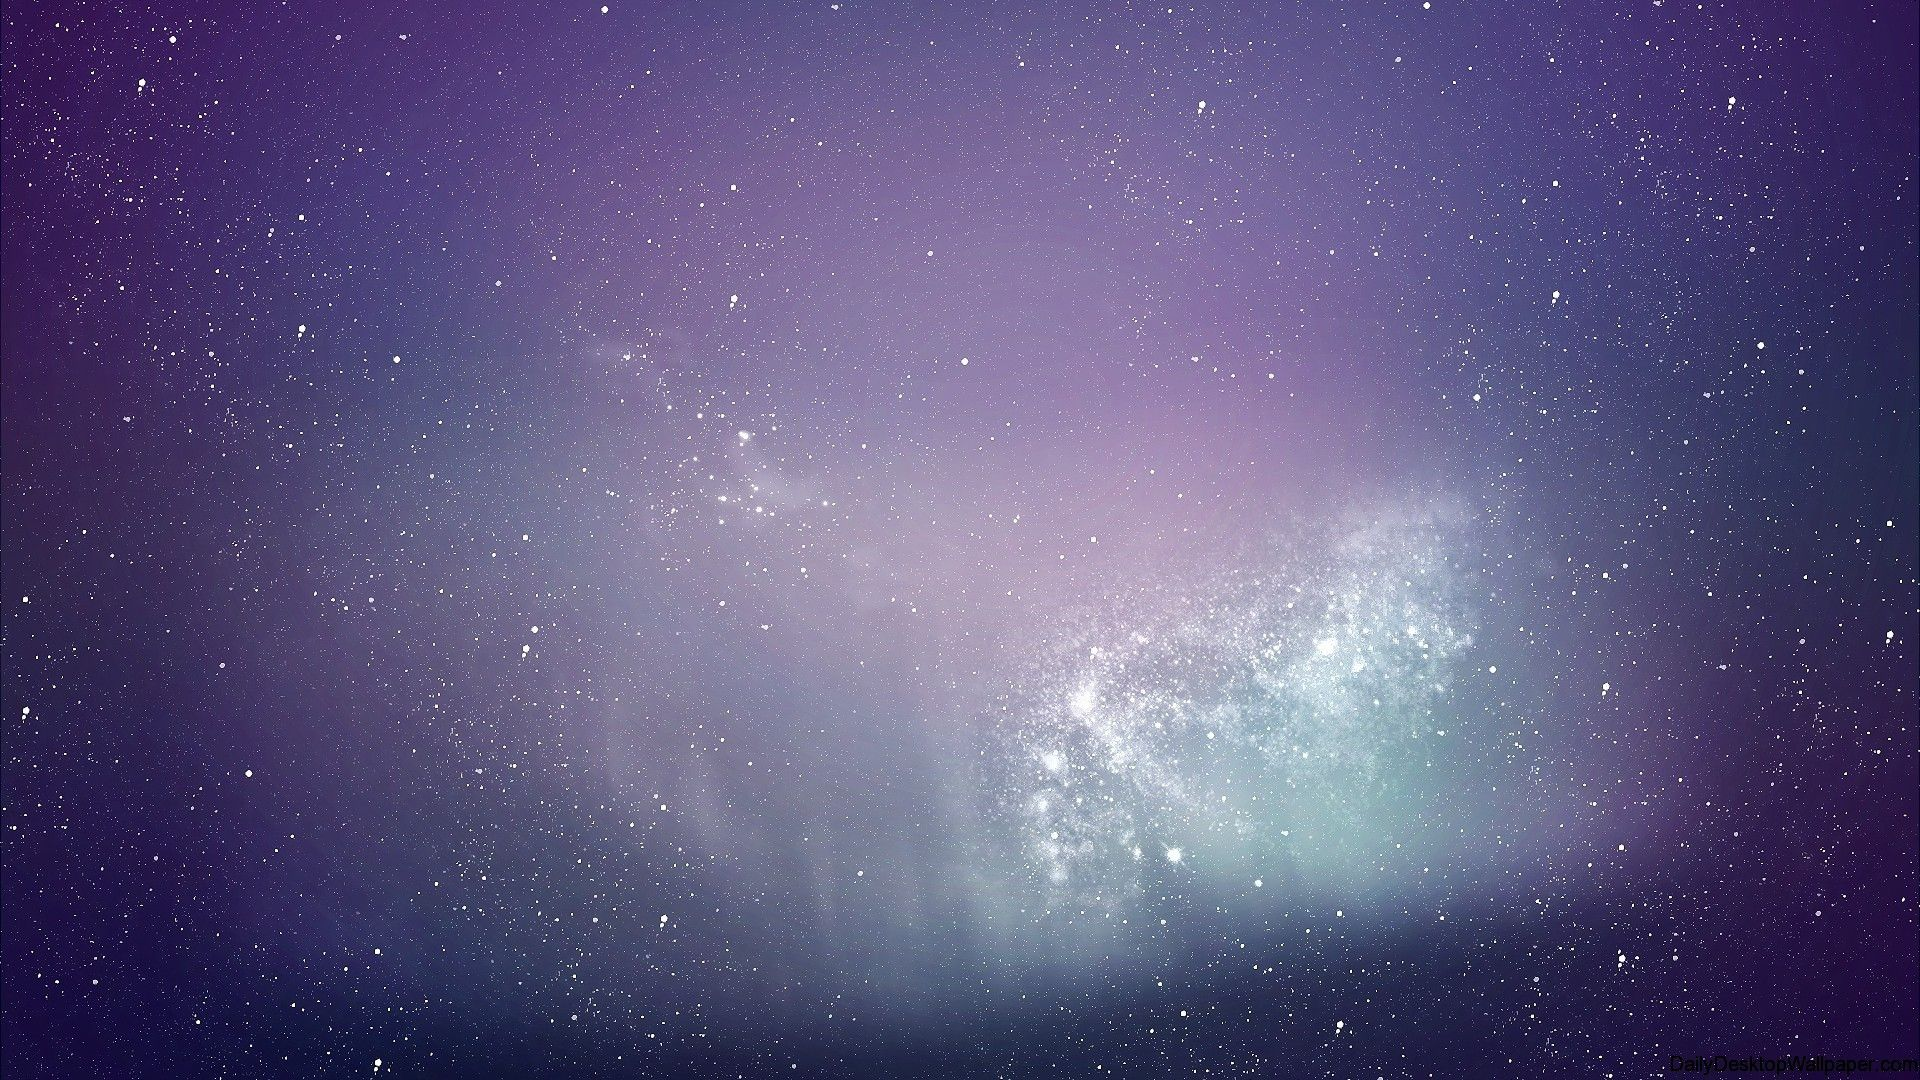 High Resolution Galaxy Apple Mac Os X Wallpaper Hd  Full Size